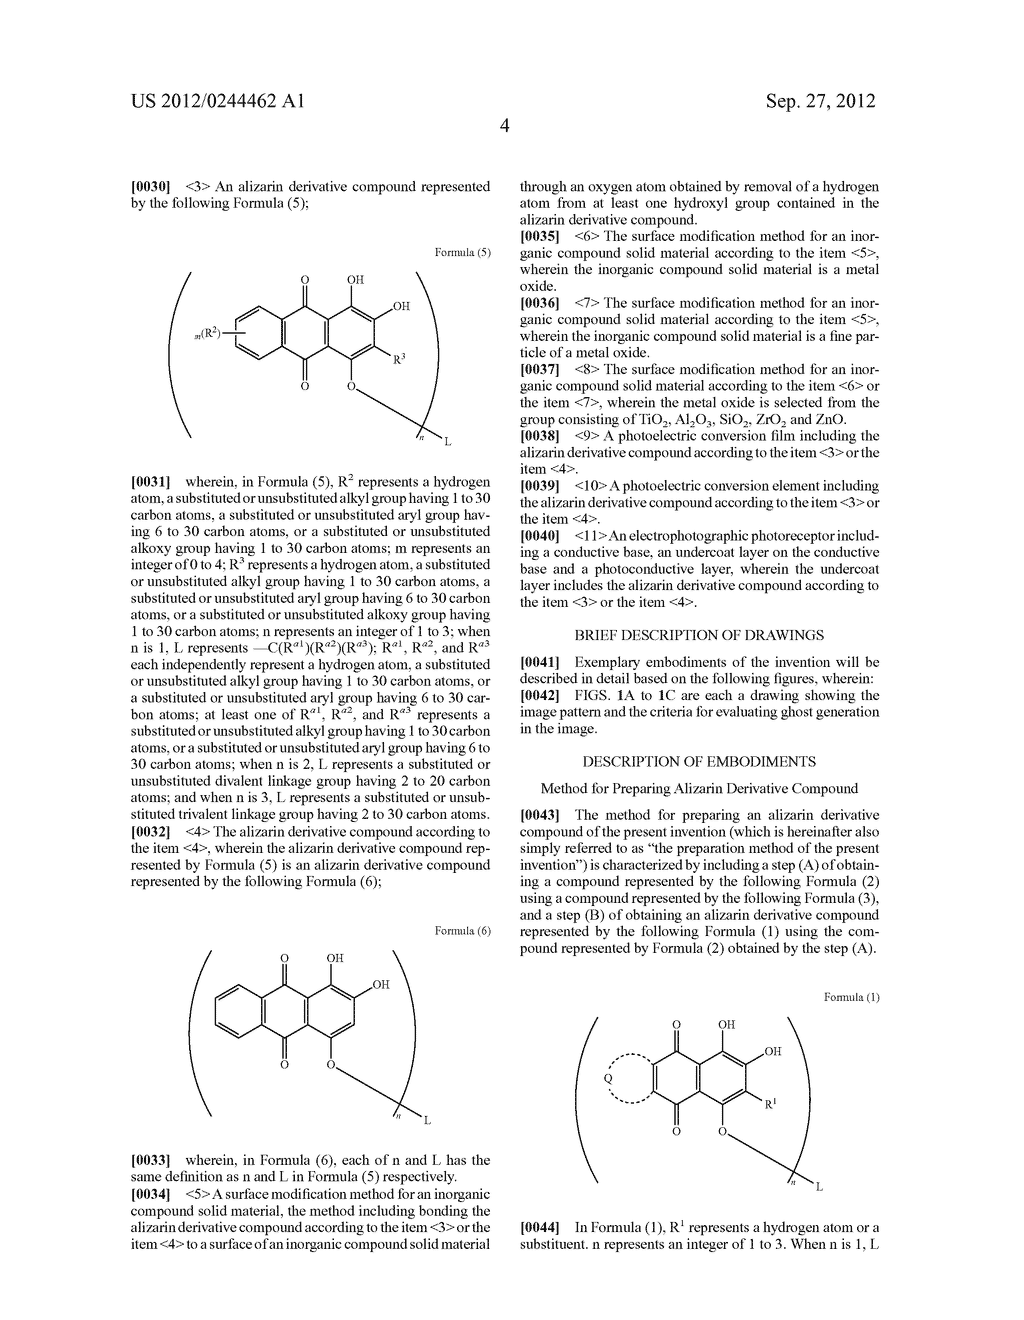 METHOD FOR PREPARING ALIZARIN DERIVATIVE COMPOUND, NOVEL ALIZARIN     DERIVATIVE COMPOUND, SURFACE MODIFICATION METHOD, PHOTOELECTRIC     CONVERSION FILM, PHOTOELECTRIC CONVERSION ELEMENT, AND     ELECTROPHOTOGRAPHIC PHOTORECEPTOR - diagram, schematic, and image 06